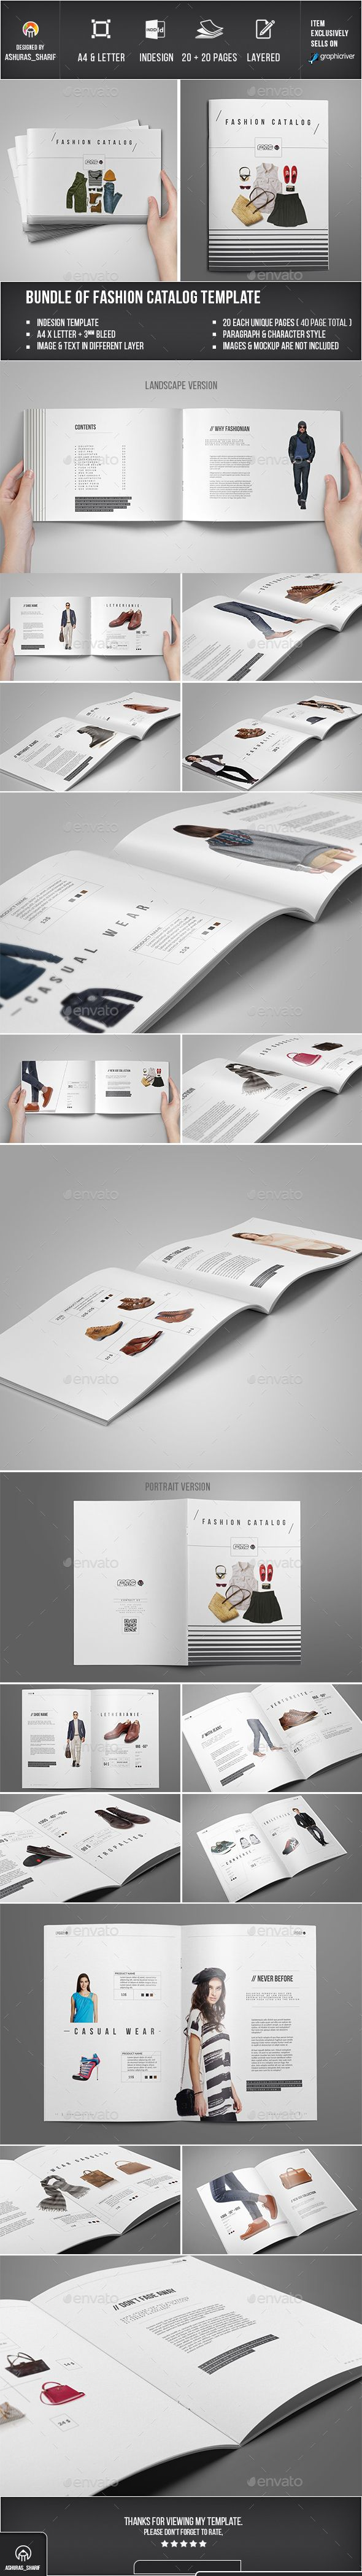 Product Catalog Template InDesign INDD. Download here: https ...